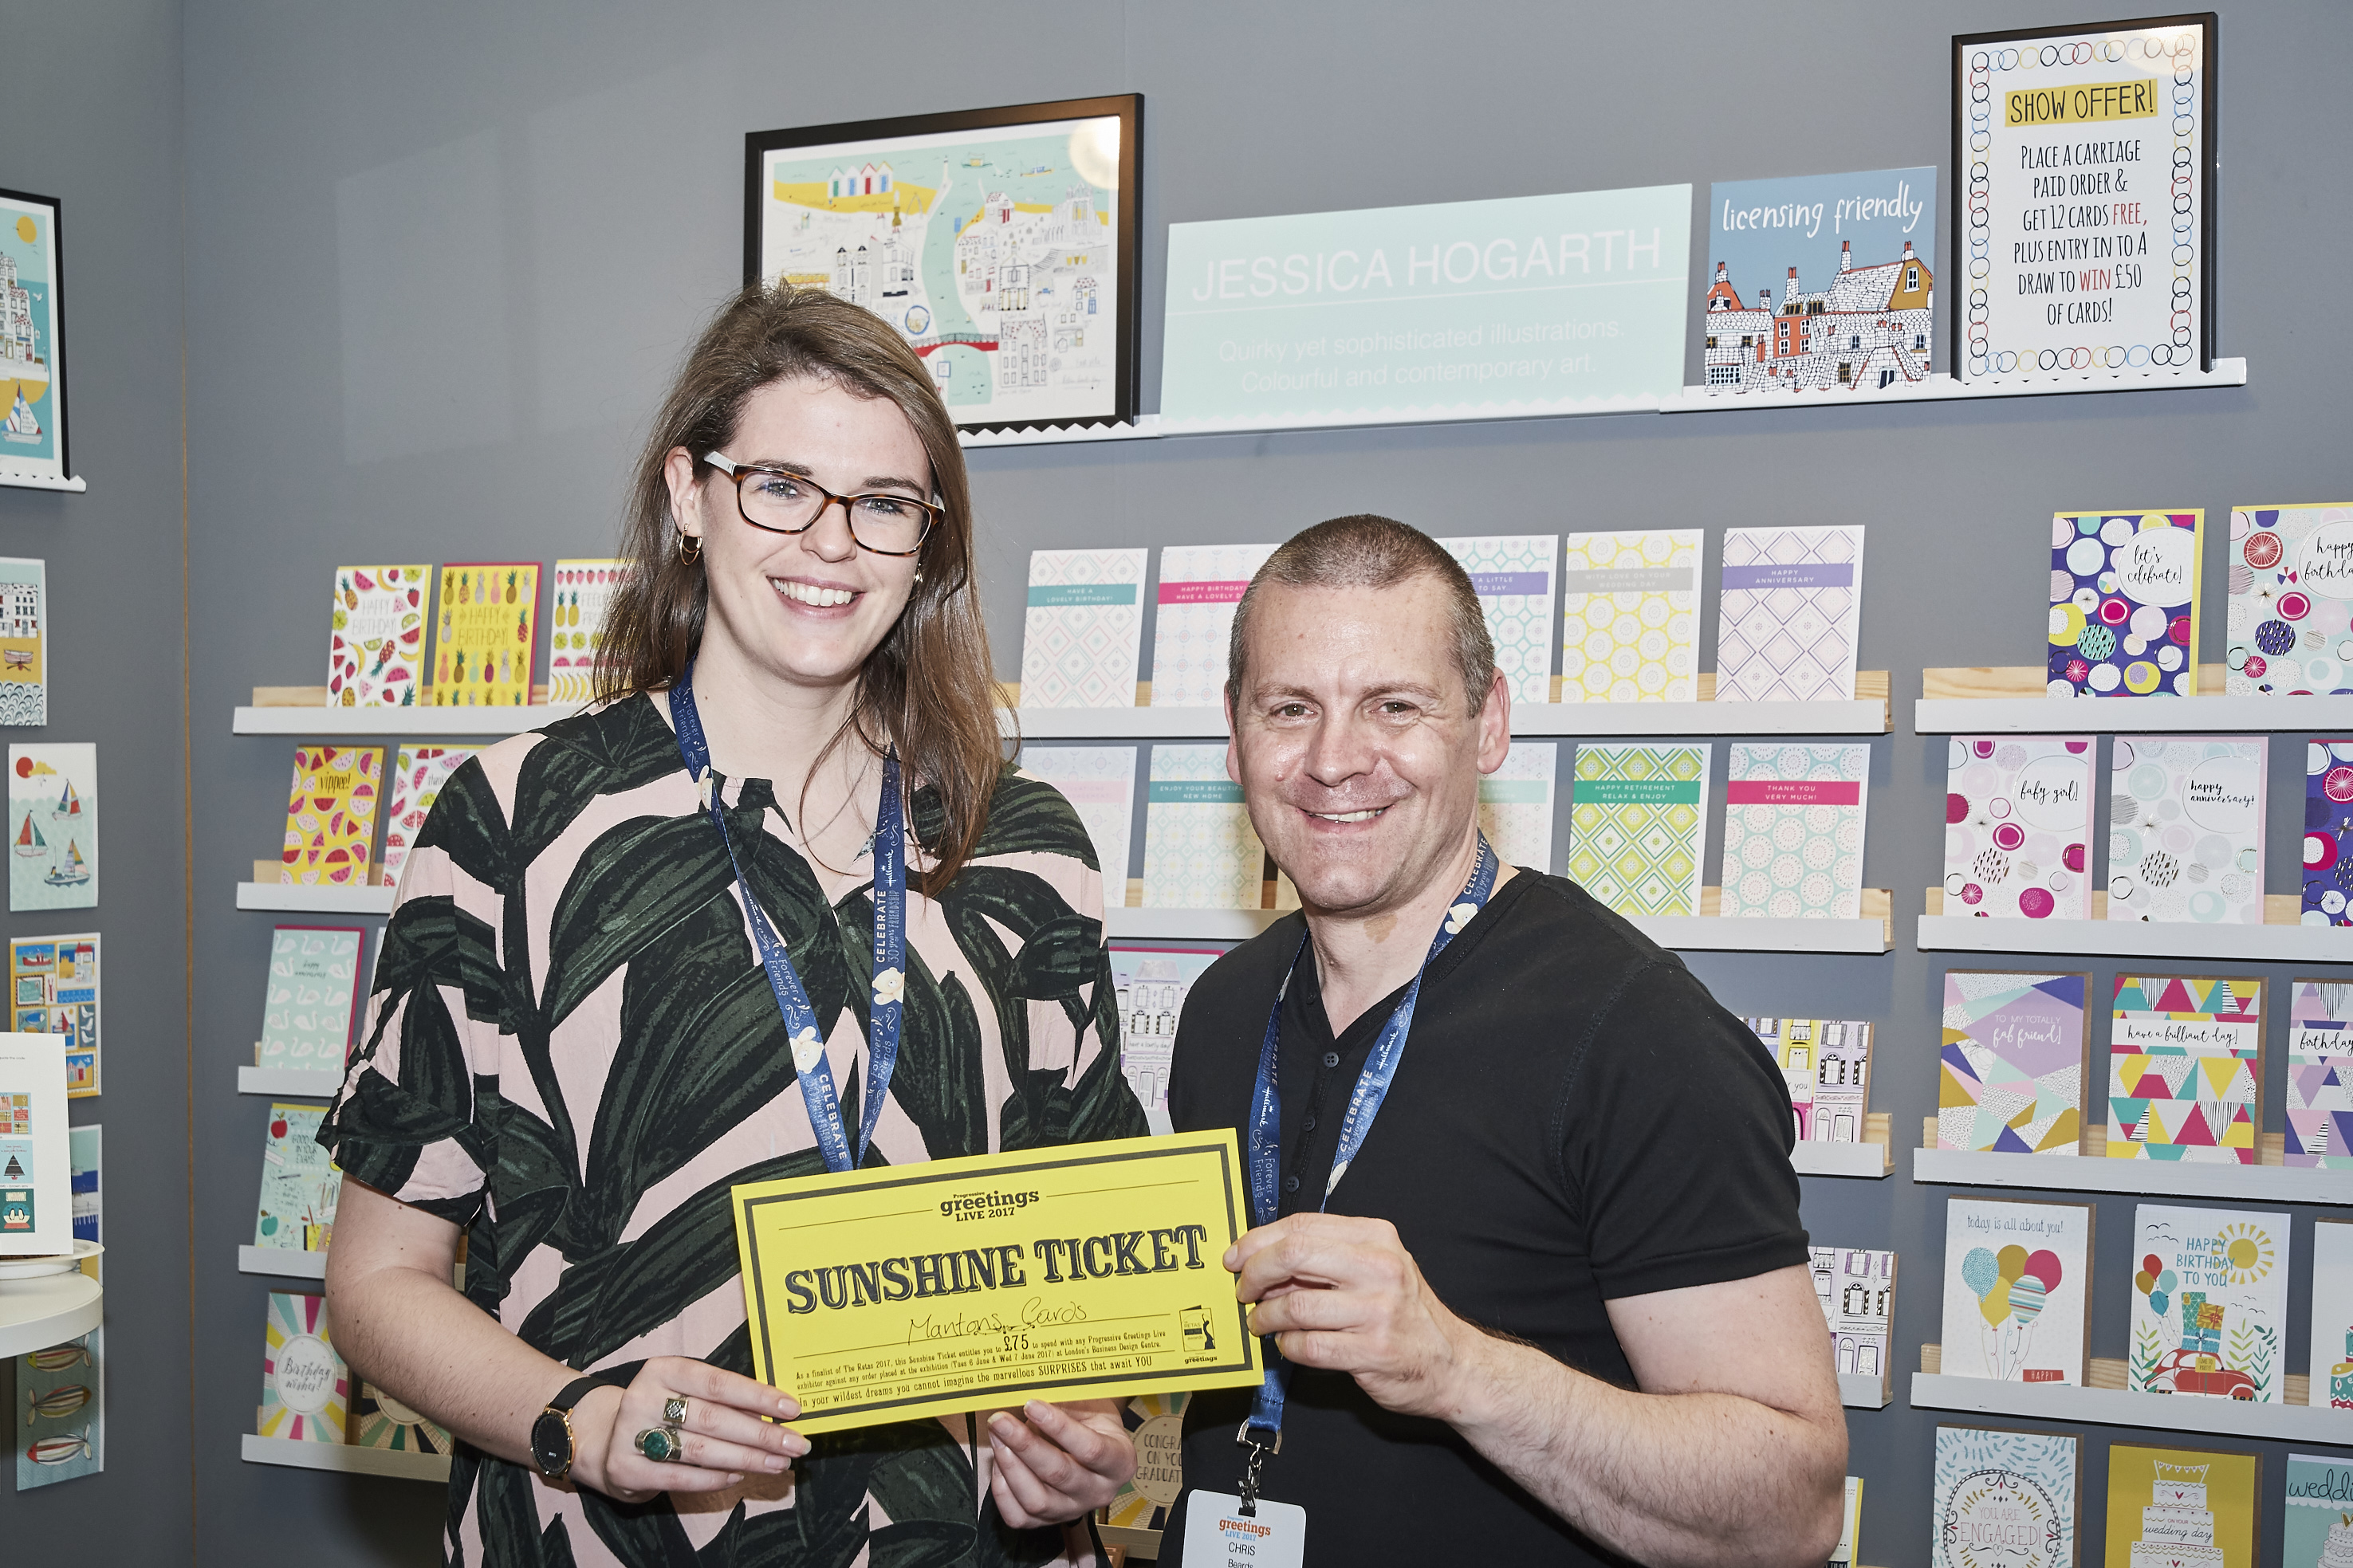 Chris Beards from Mantons Cards hands over his Sunshine ticket to Jessica Hogarth at last year's show.